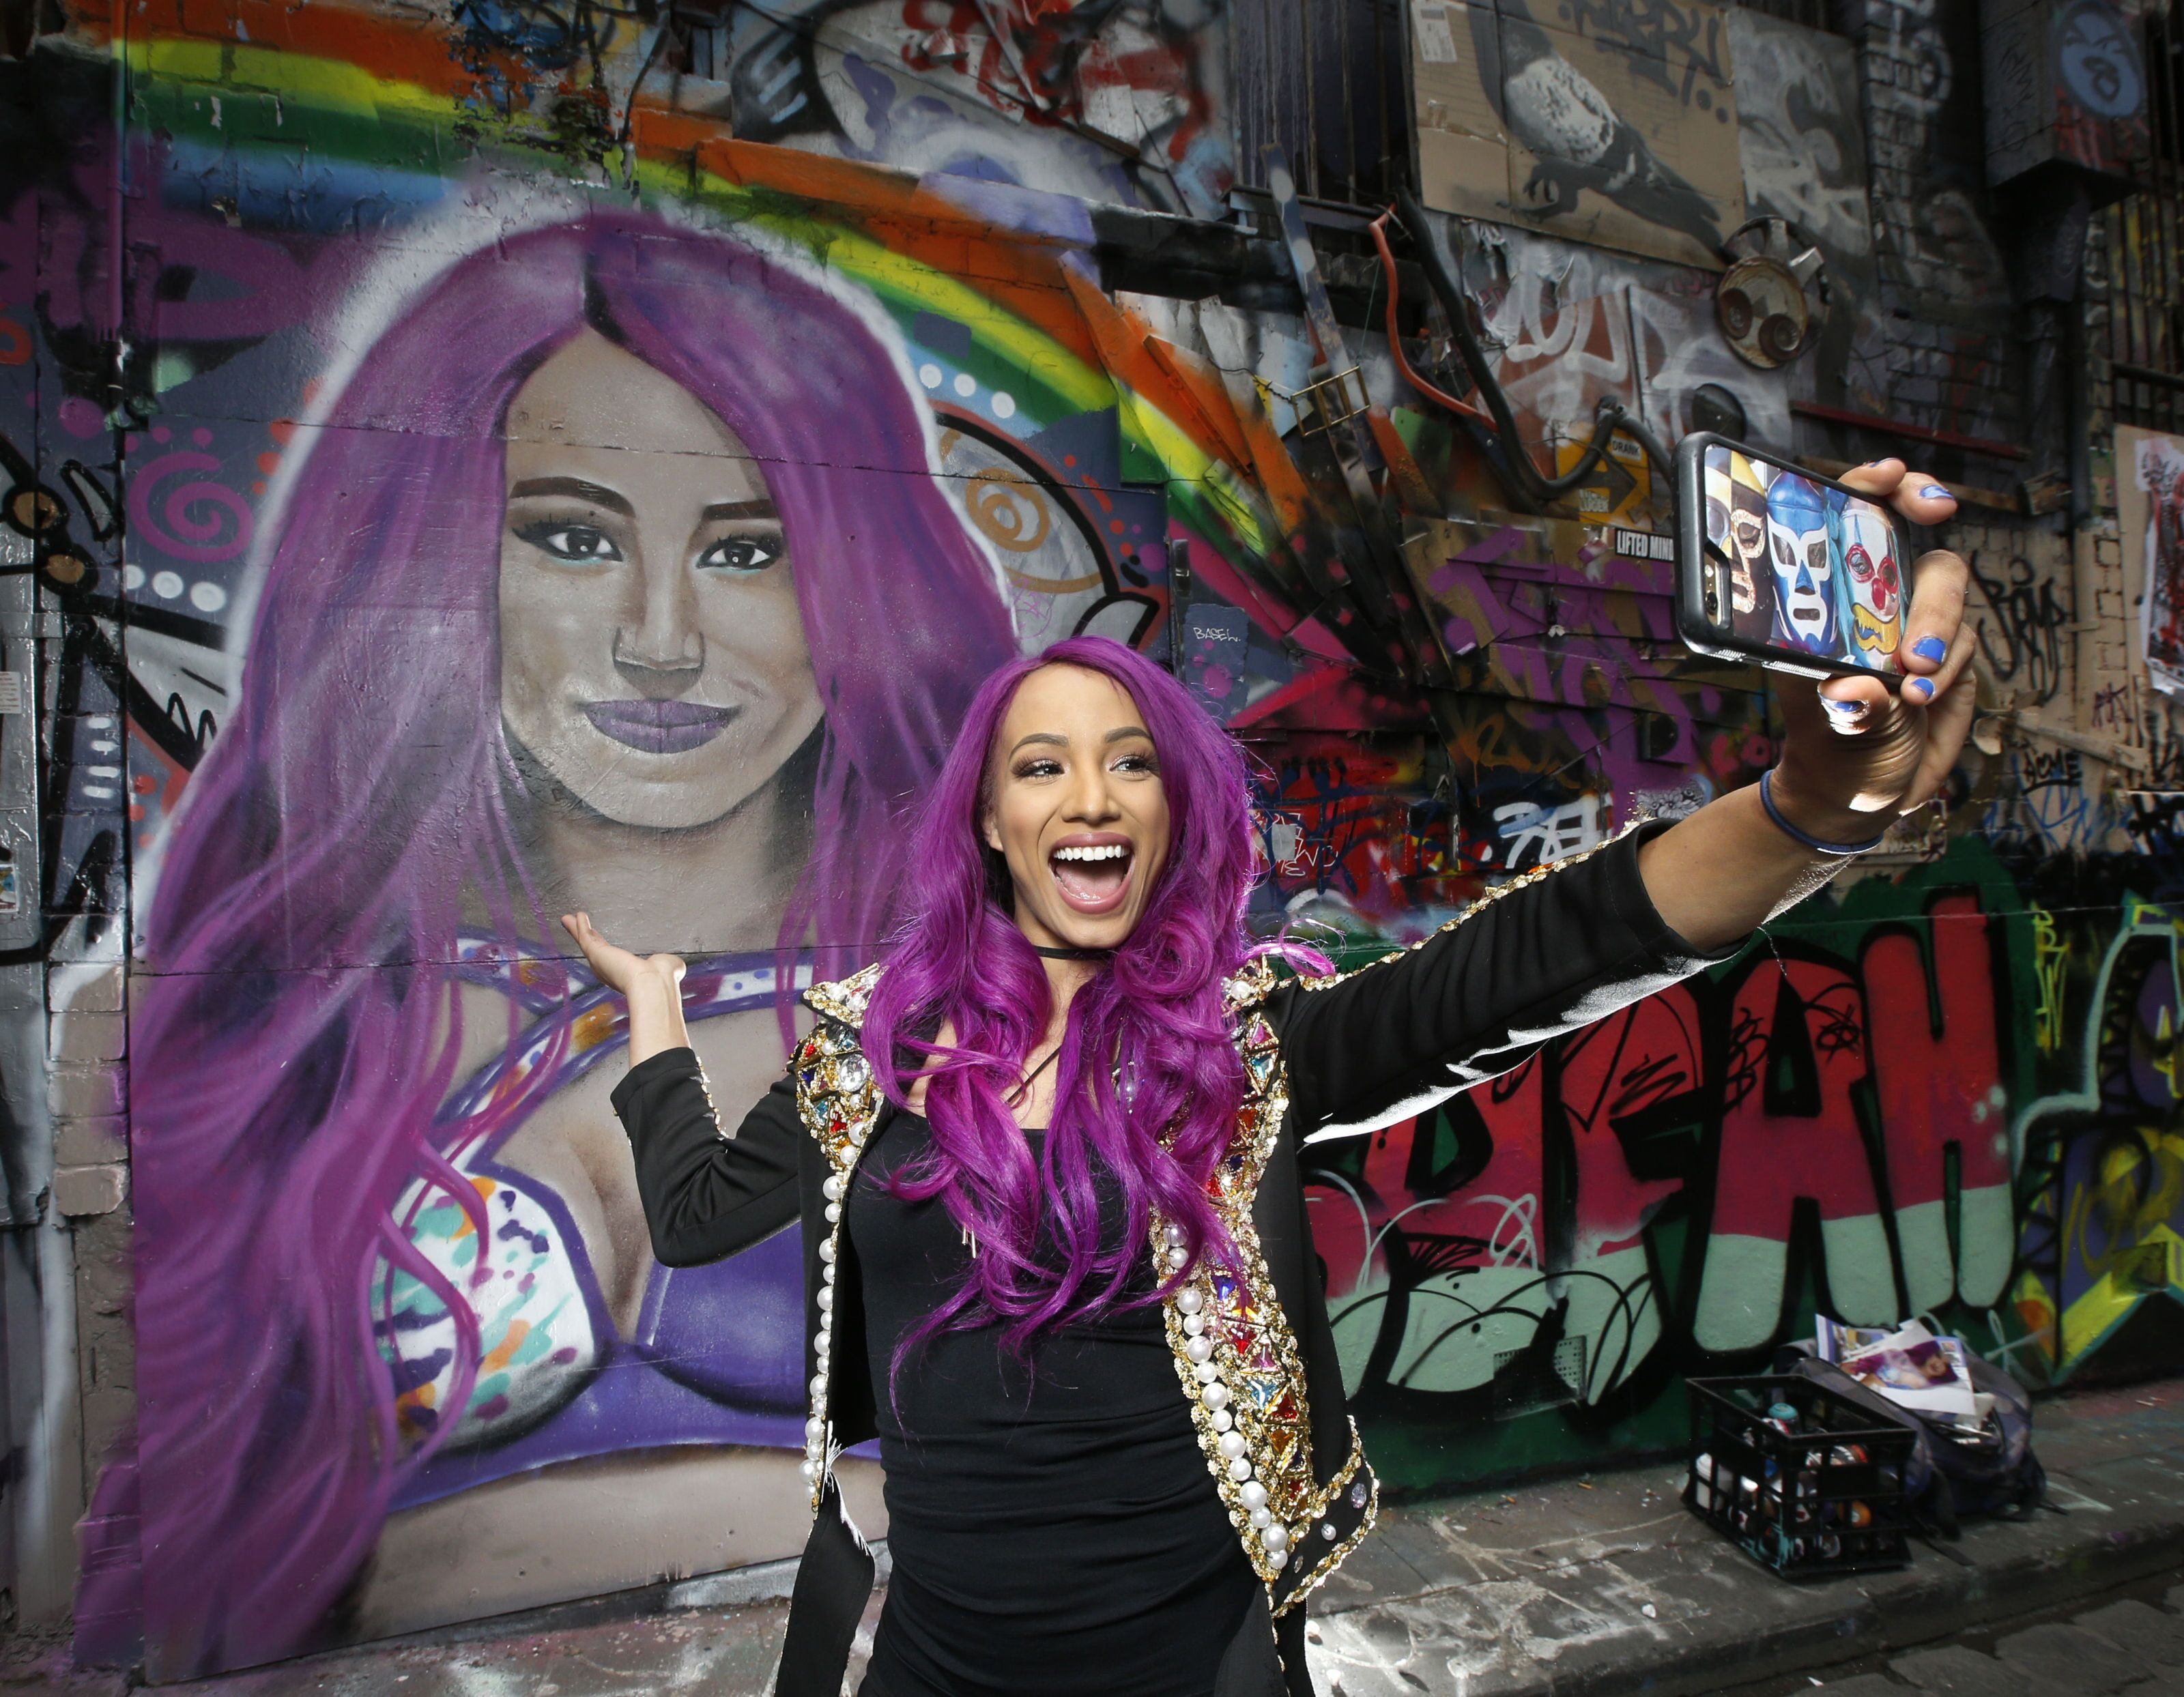 db58030bc WWE: The fan response to Sasha Banks rumors is troubling